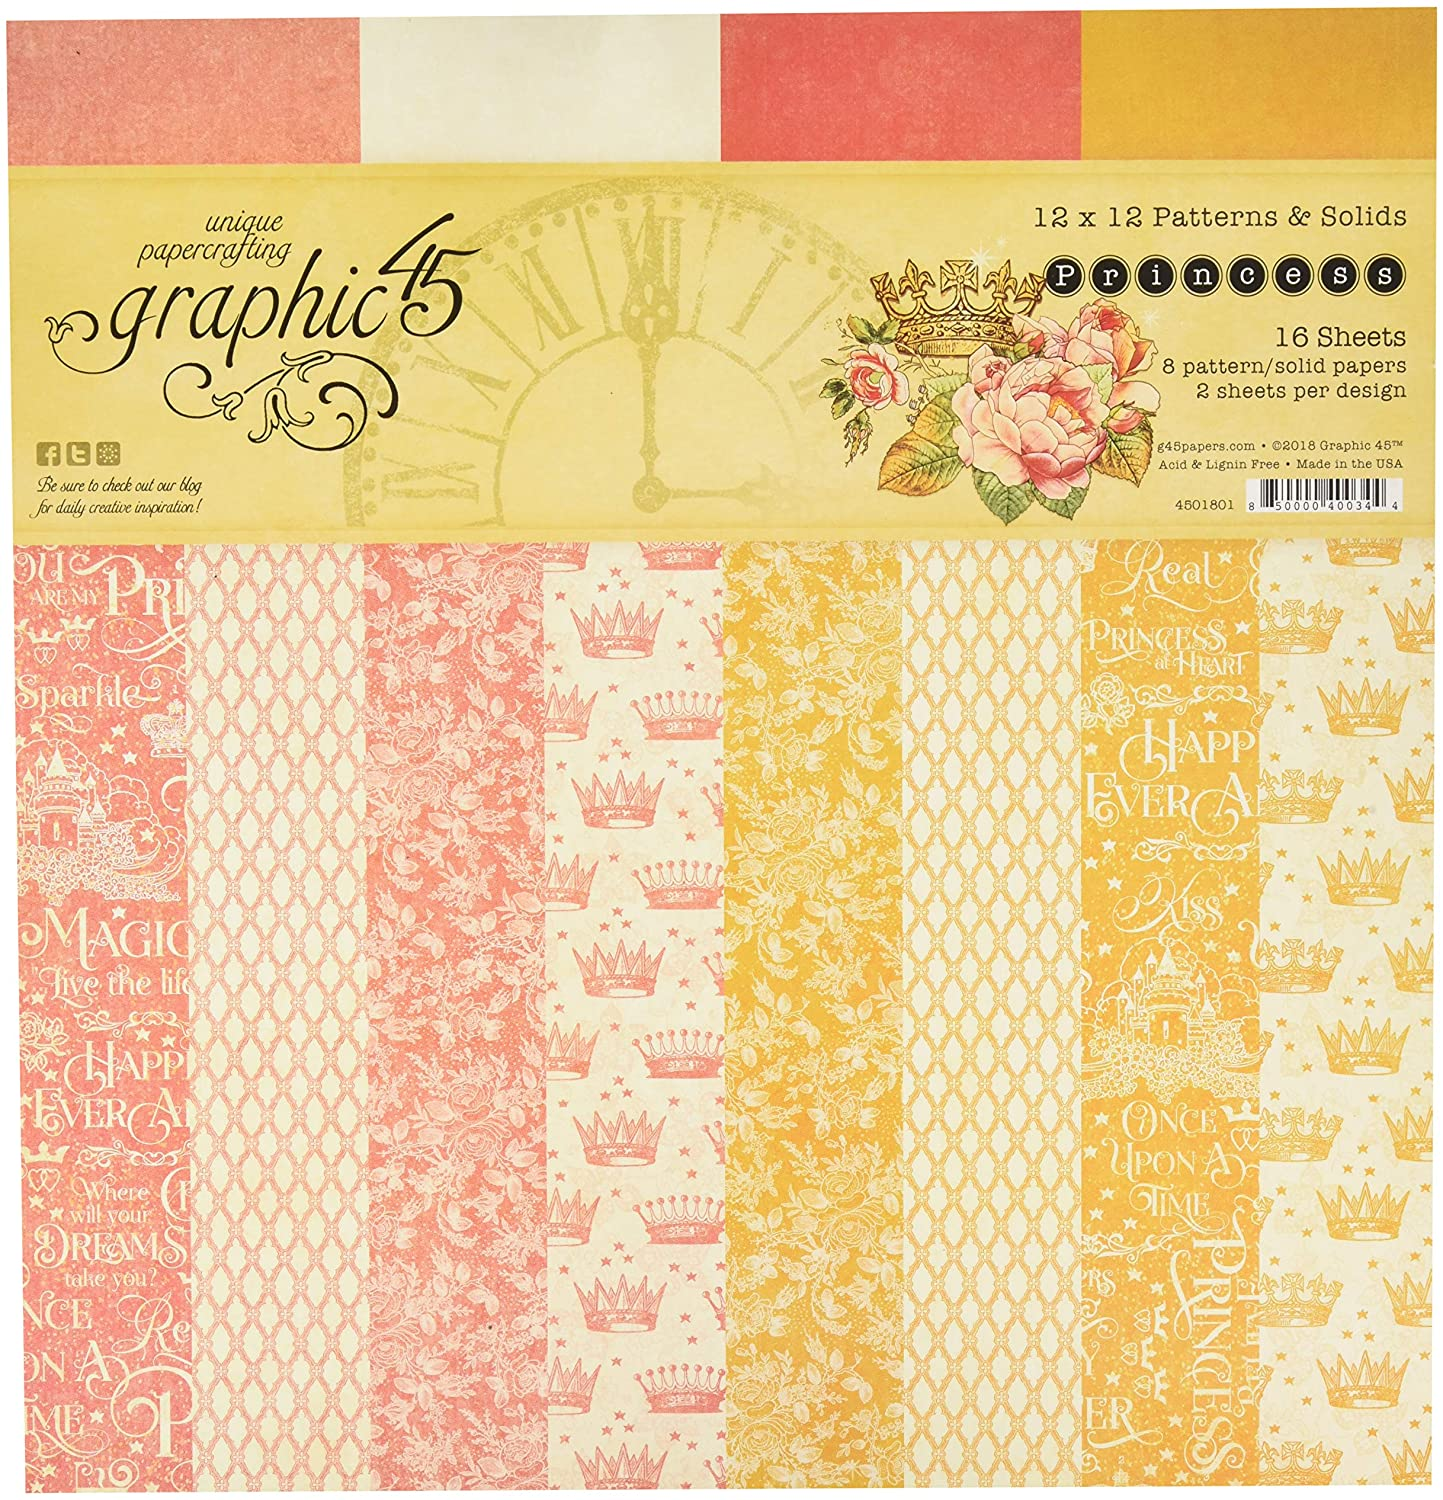 Graphic 45 - Princess 12x12 Patterns & Solids Pad (SALE!)